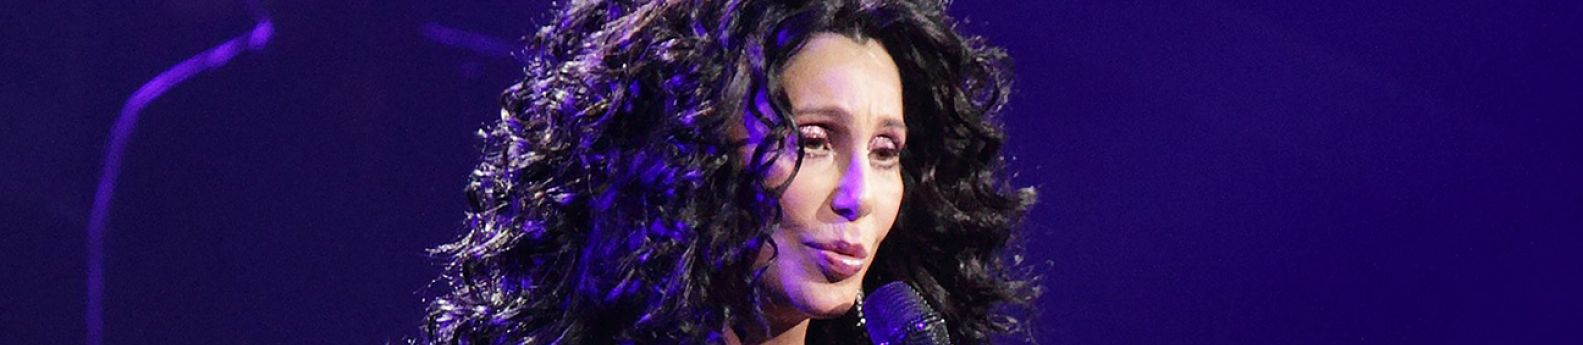 Cher Tickets 2019 Ticketwood